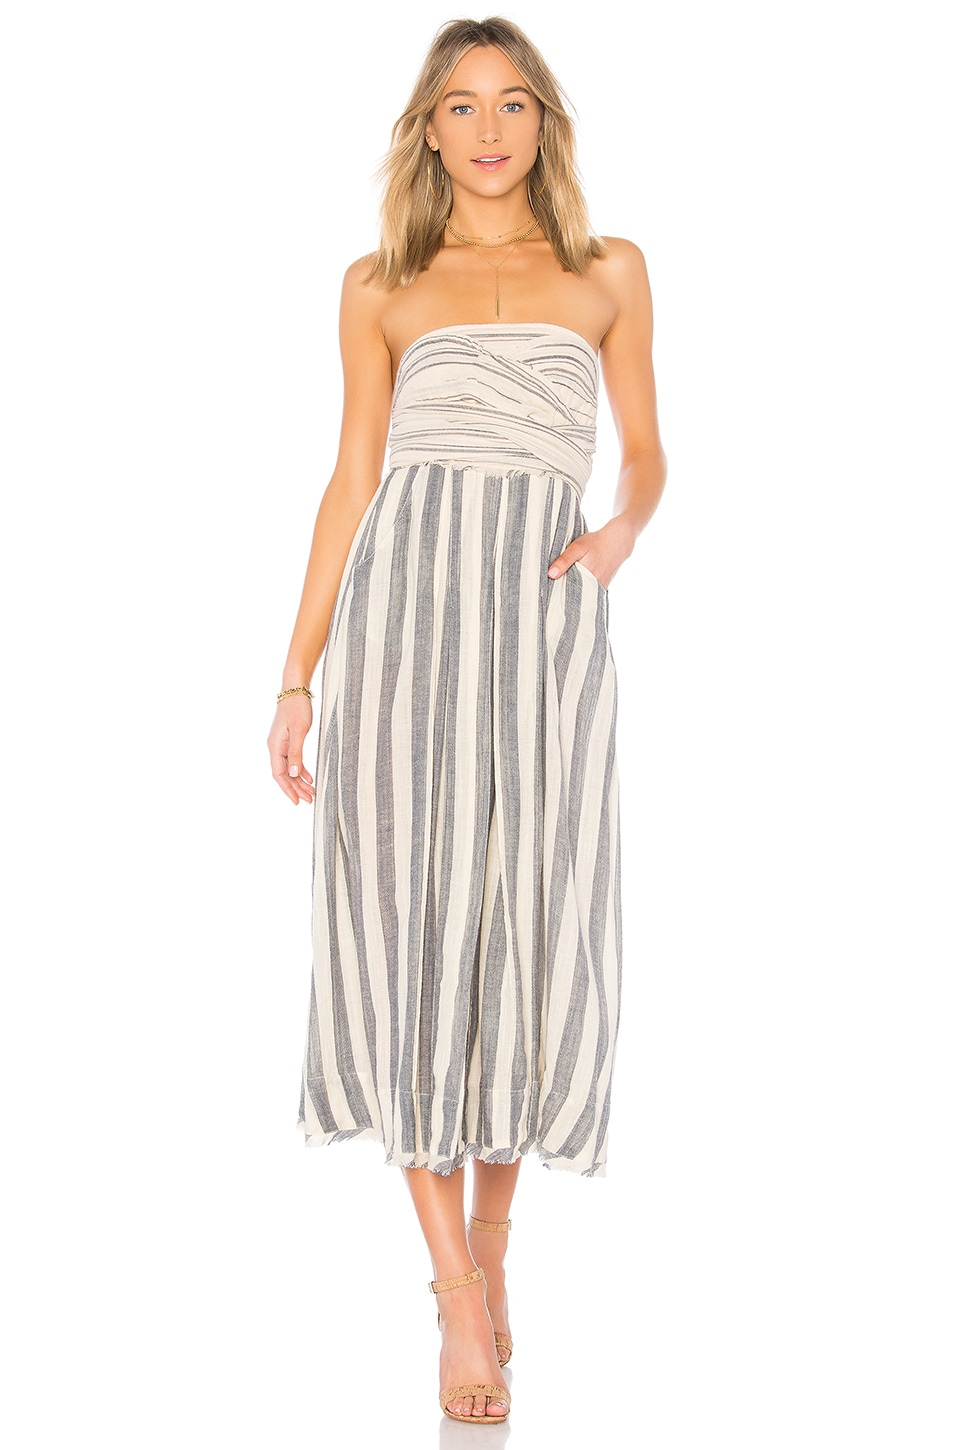 Free People Stripe Me Up Dress in Blue Combo